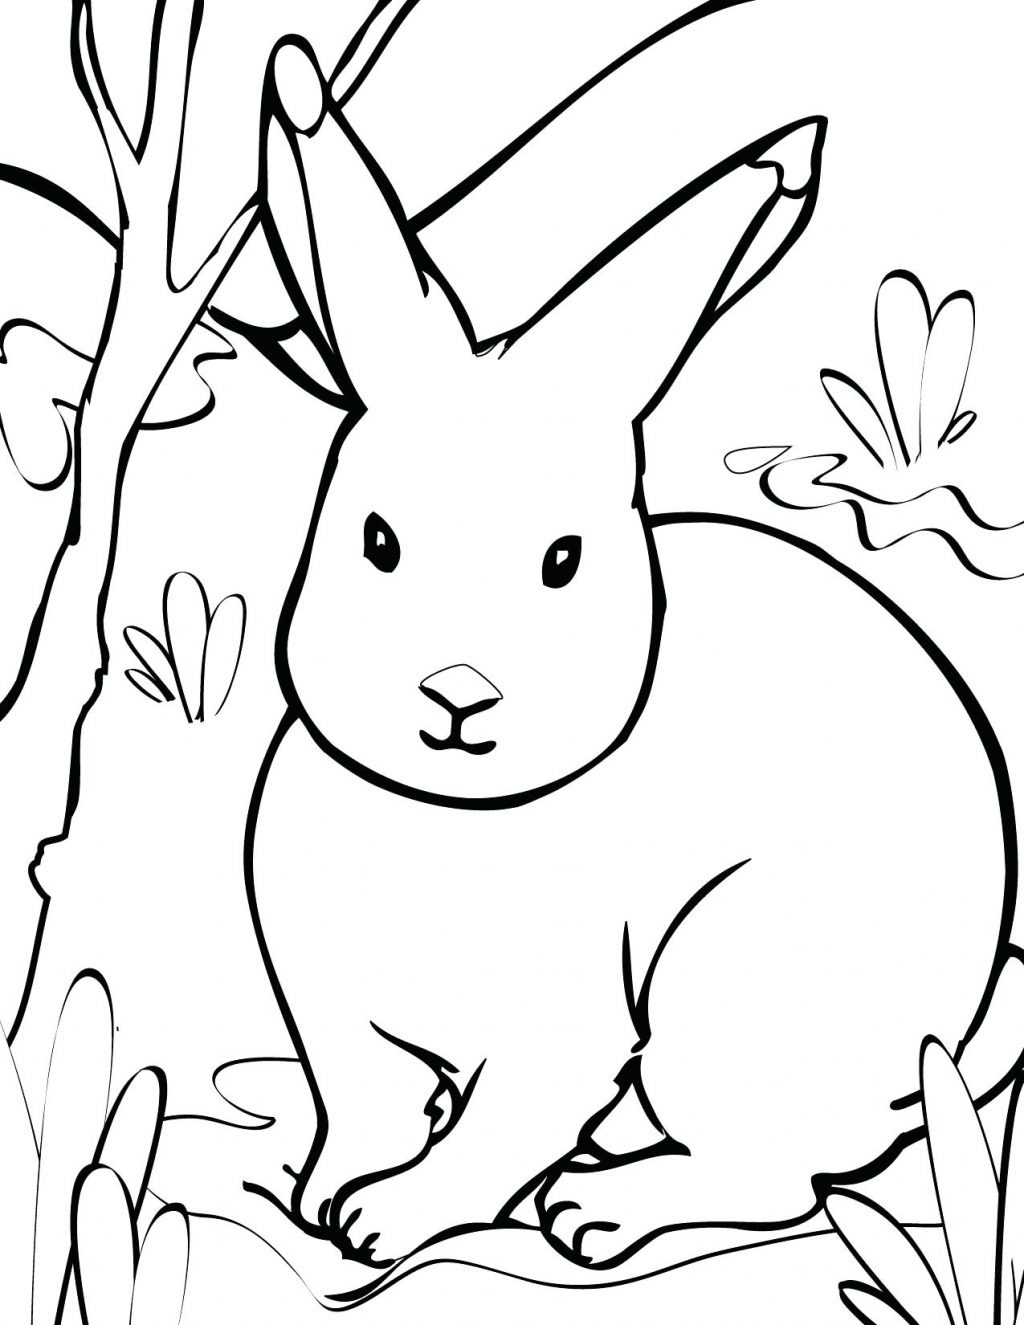 Coloring Pages Rabbit Coloring Pages Printable Animals New Peter Gallery Of Fresh Bunny Coloring Pages Animal Coloring Pages Pinterest Gallery